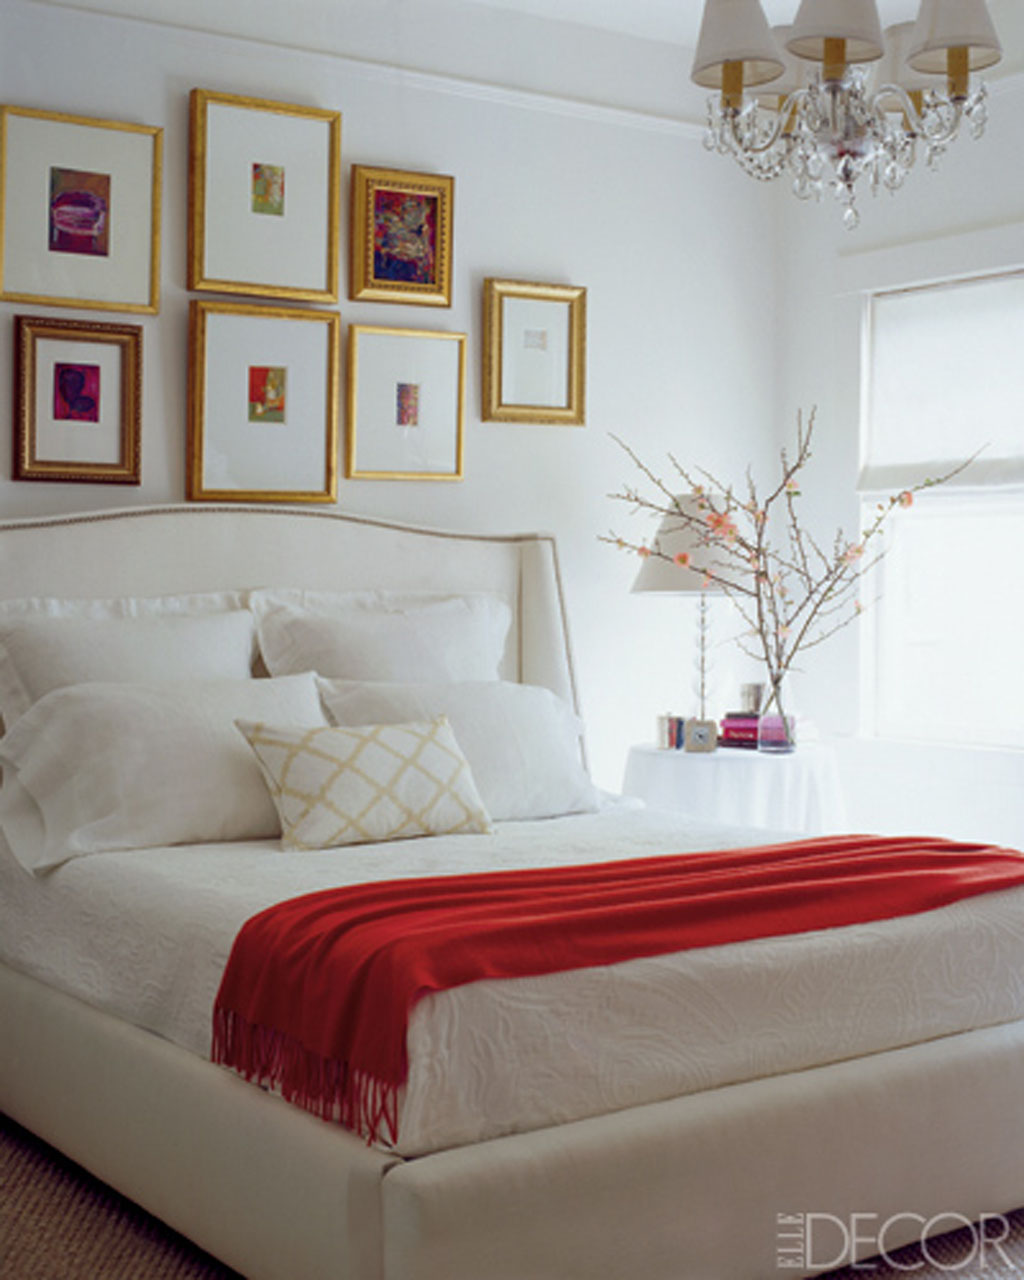 41 white bedroom interior design ideas pictures for White walls interior design ideas